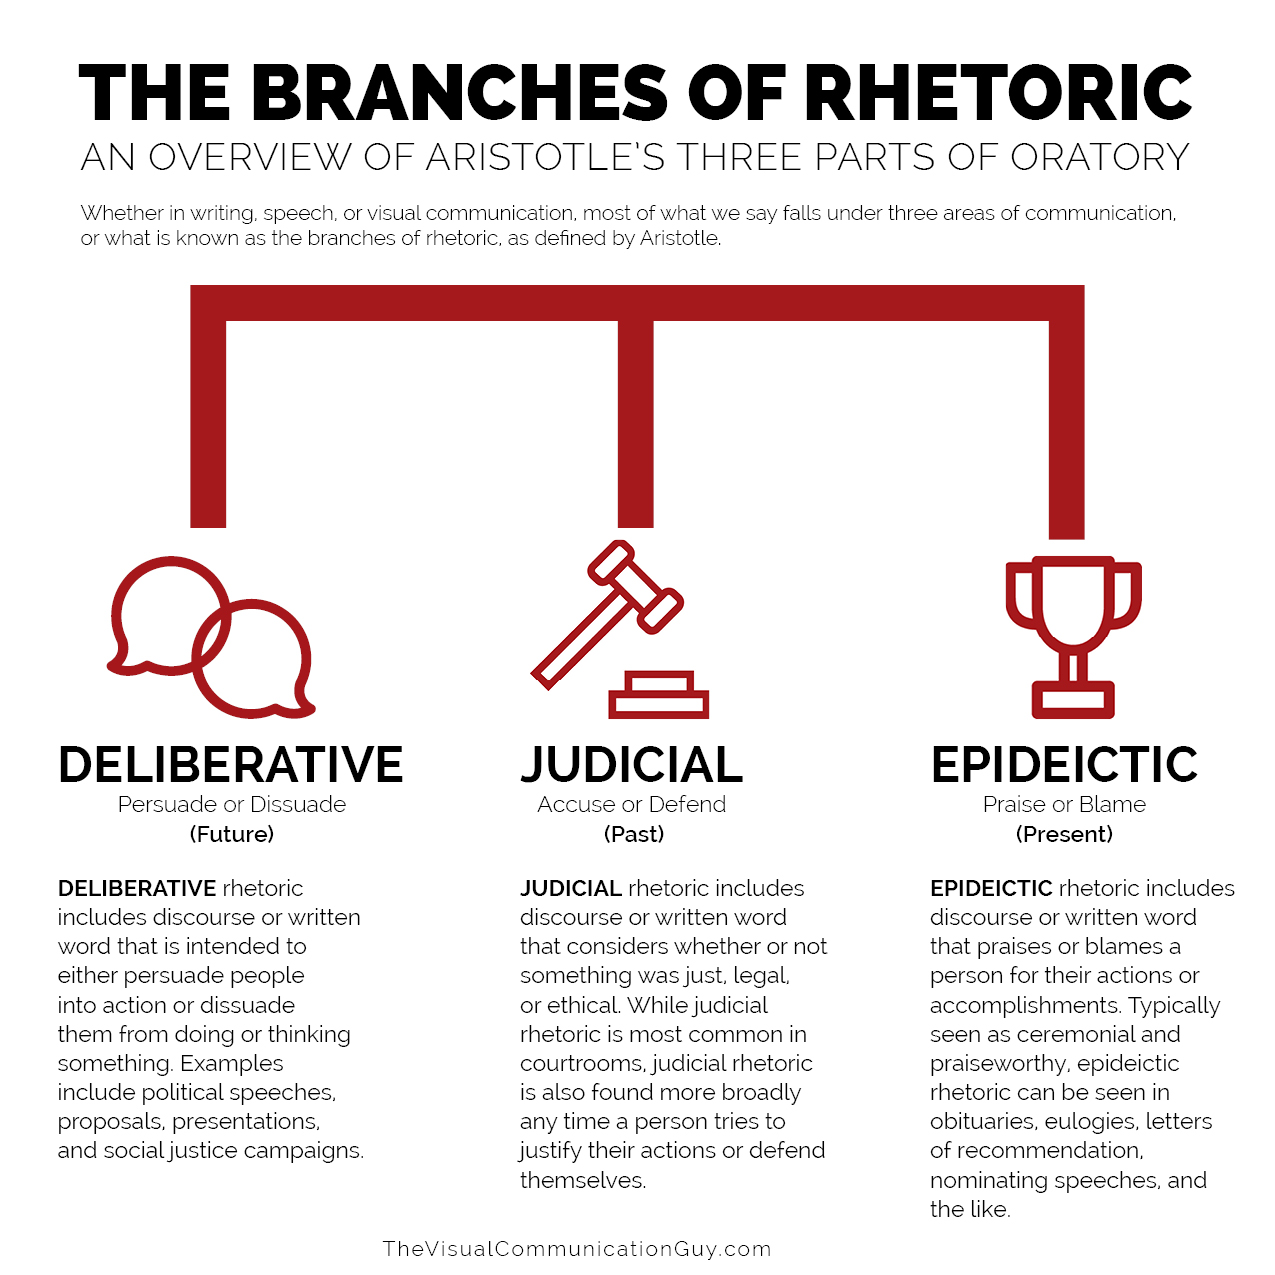 essay on rhetoric A rhetorical analysis essay addresses the effectiveness of an author's rhetoric (or  writing strategy) for a particular writing when thinking about rhetoric, students.